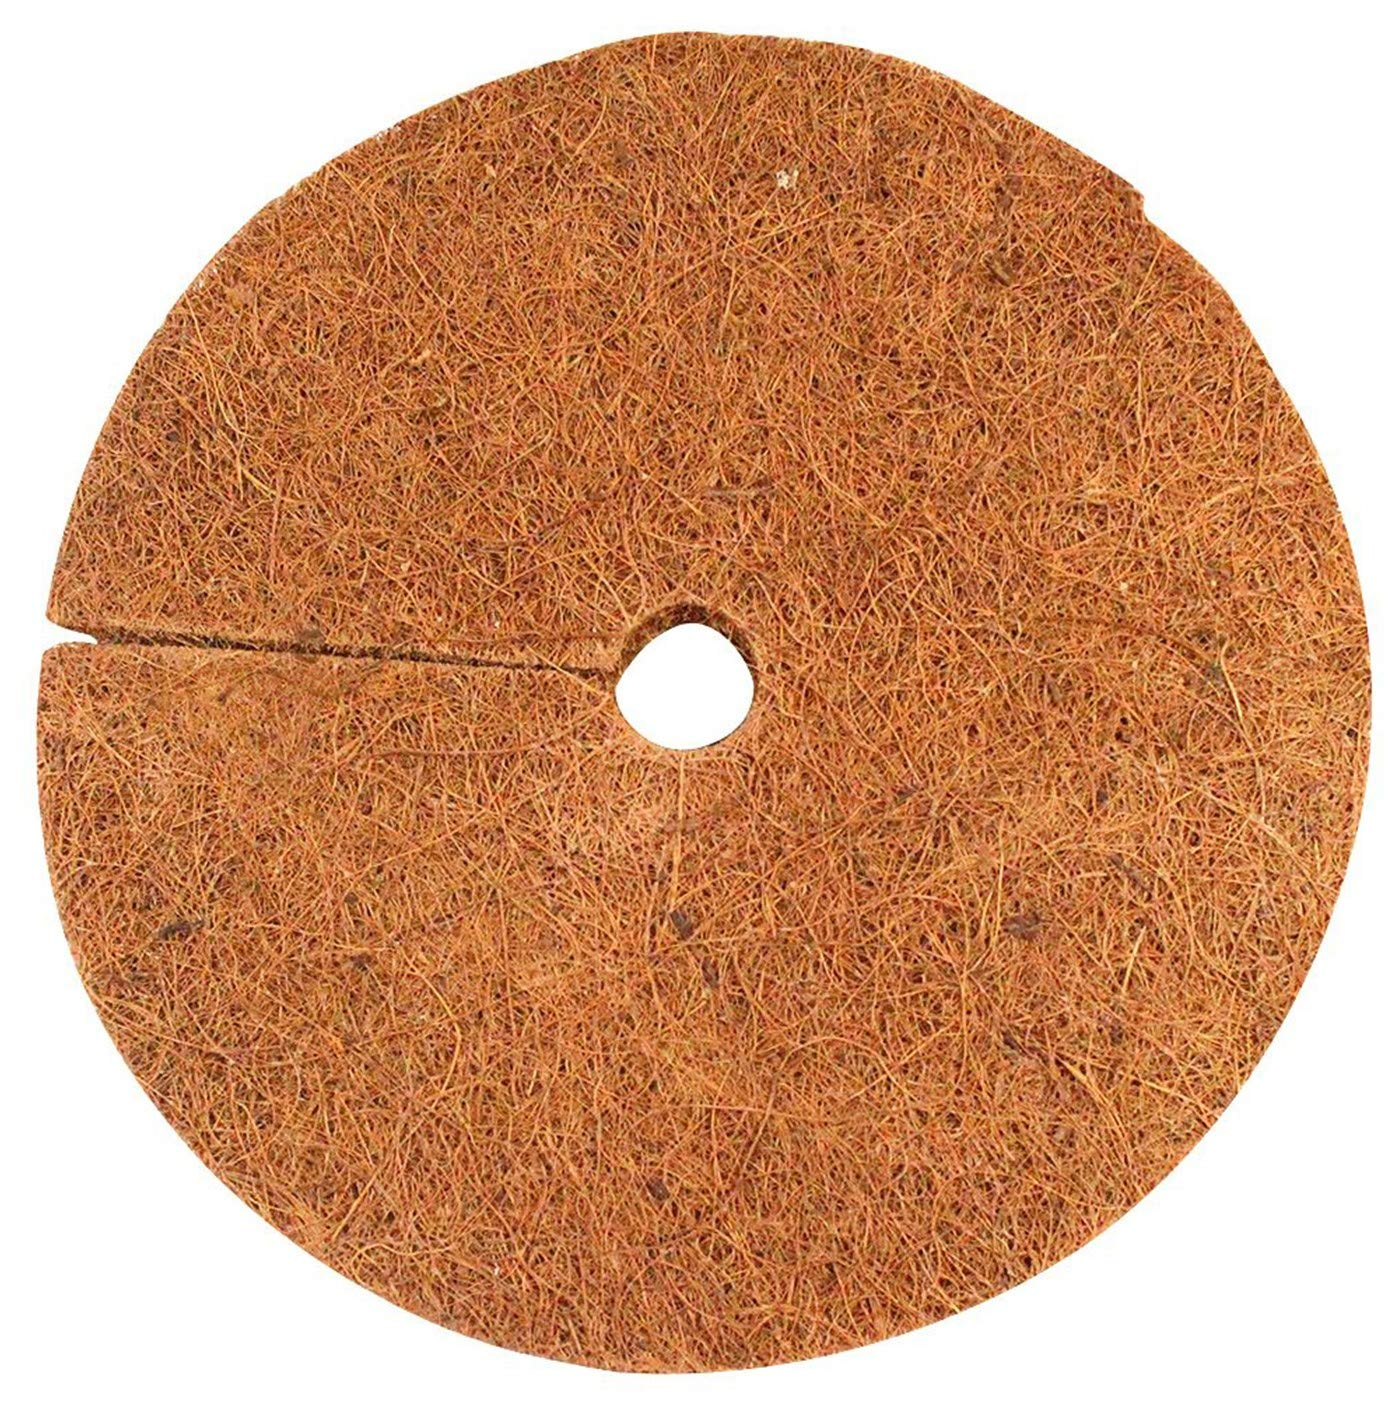 """Envelor Home and Garden Coco Coir Fiber Tree Rings for Weed Control, Plant Cover, Coco Liner Mulch Mat (4"""" Dia Pack of 20)"""